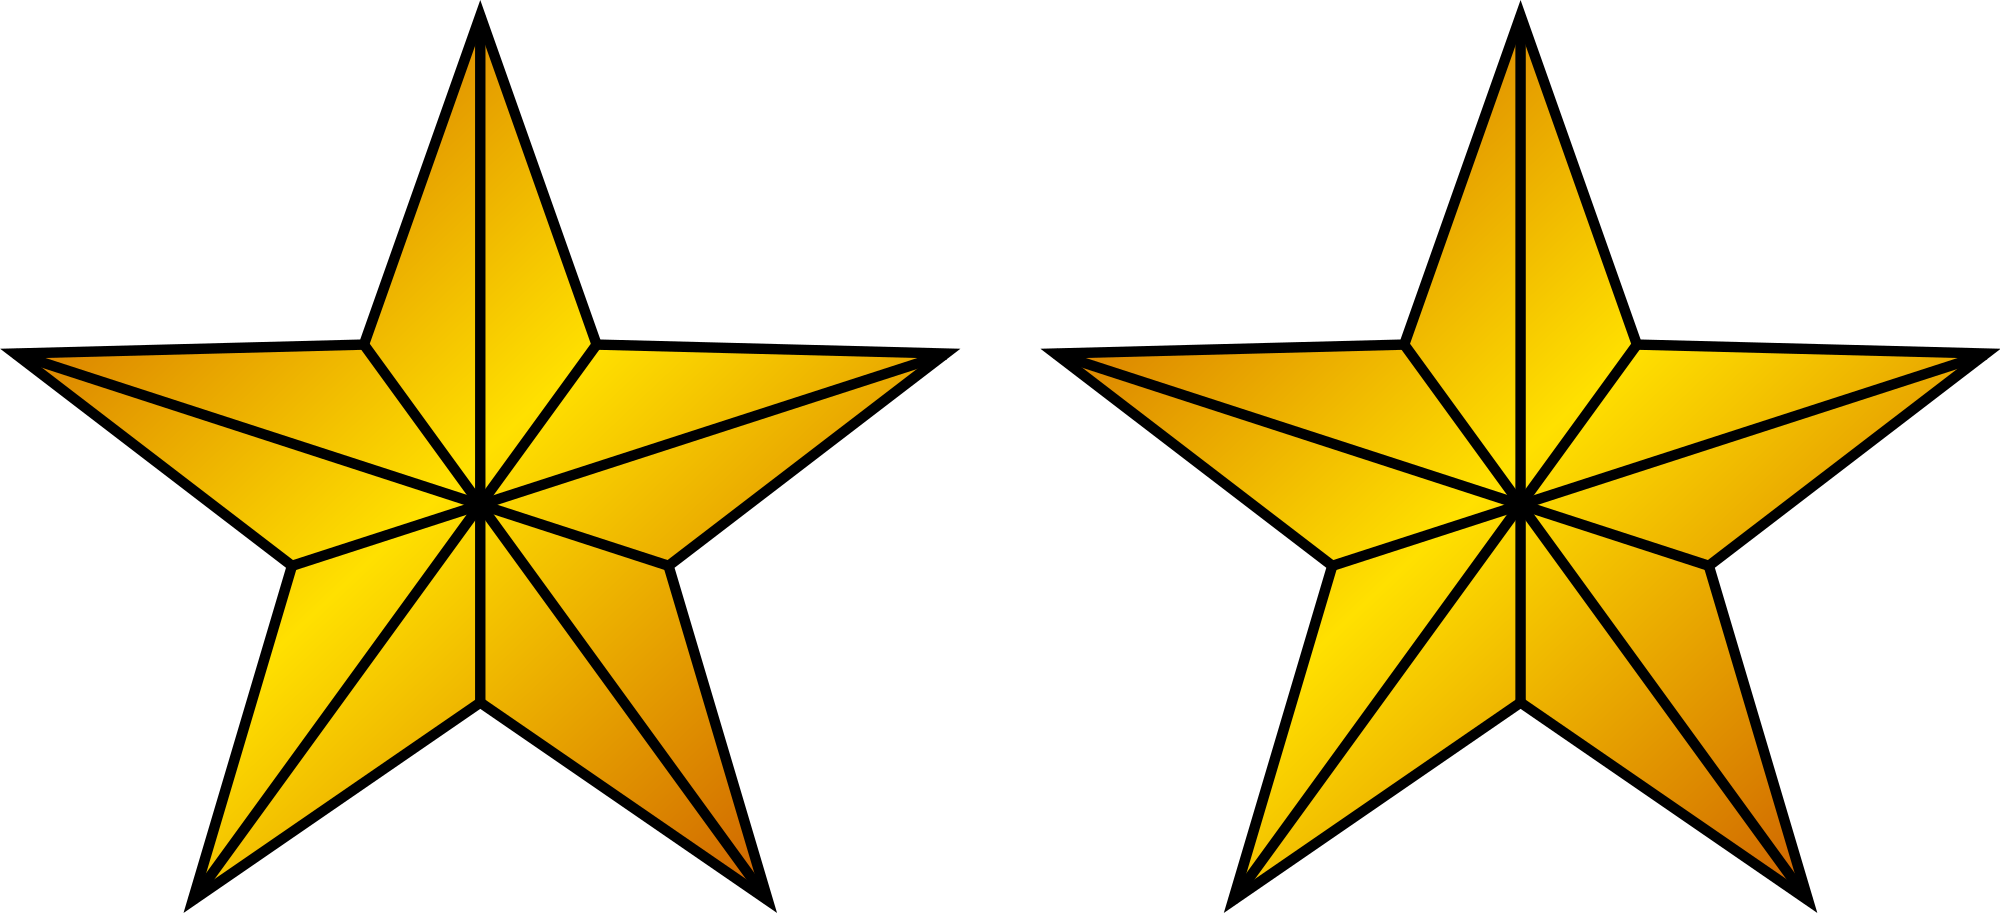 2000x913 File2 Gold Stars.svg